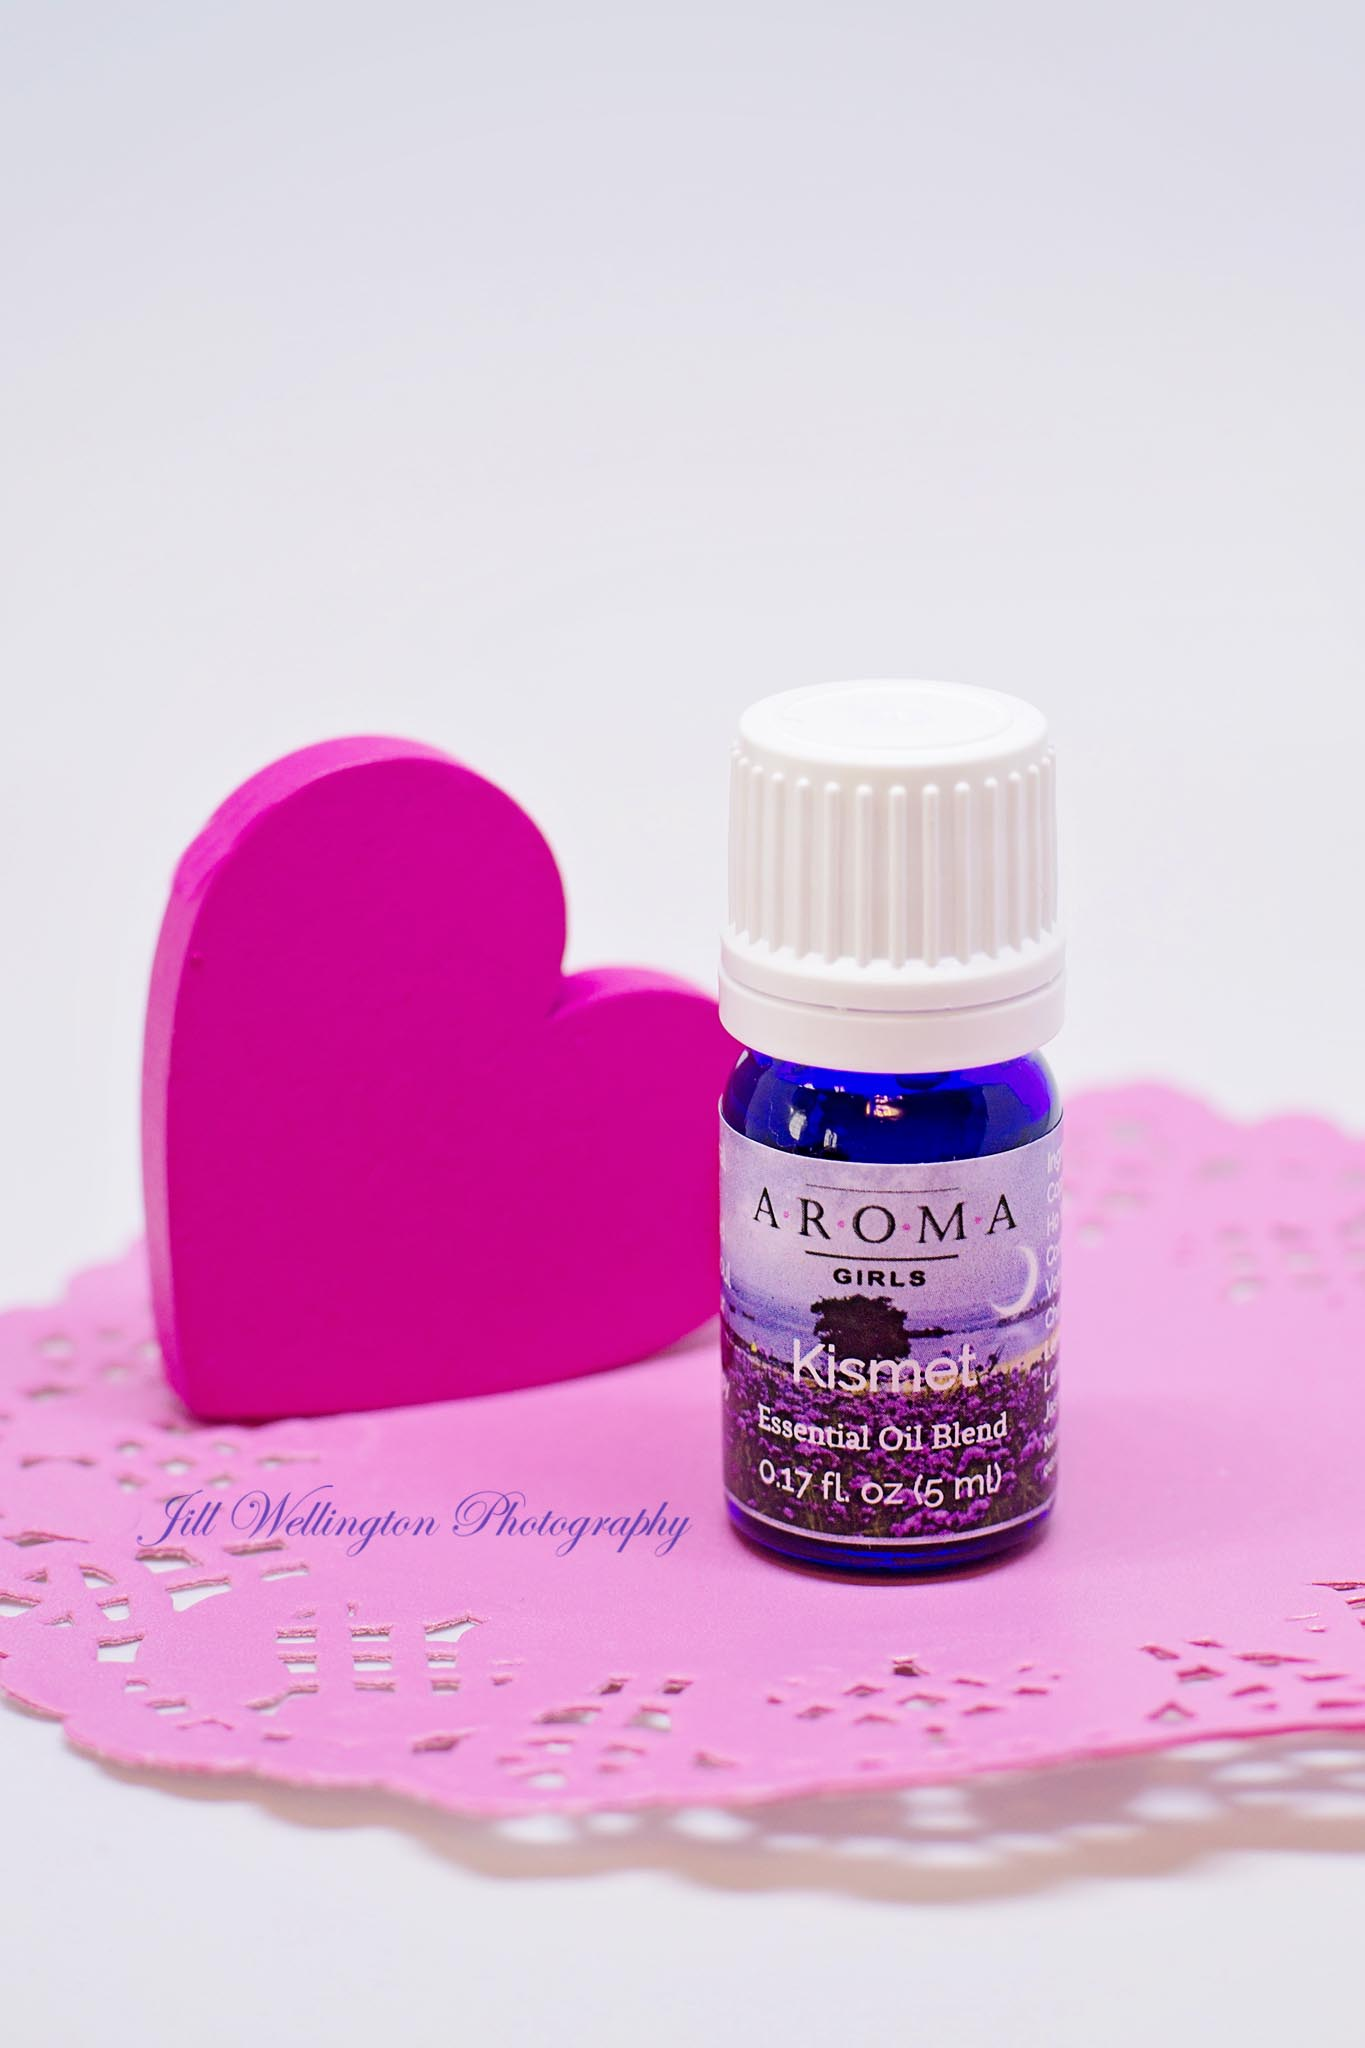 AromaGirls Kismet Essential Oil Blend